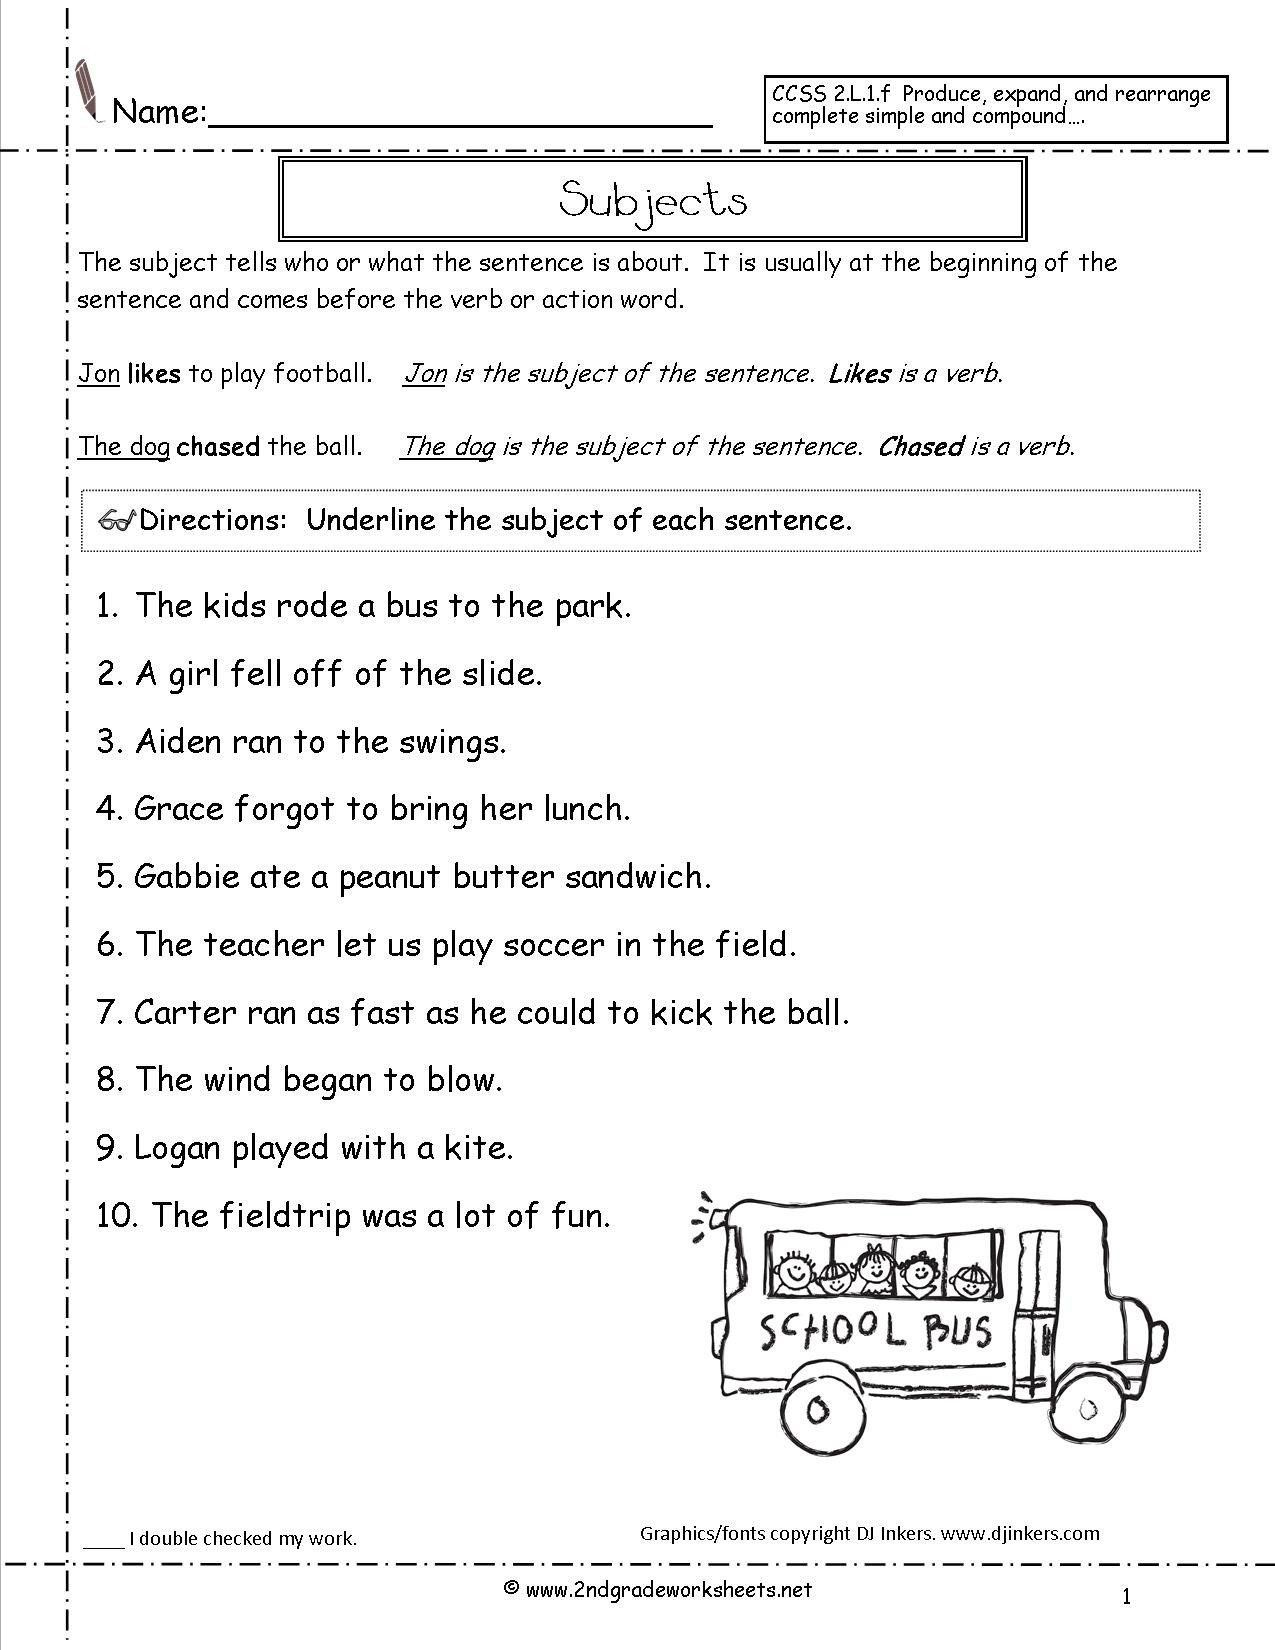 hight resolution of Subject Sentence Worksheets   Printable Worksheets and Activities for  Teachers